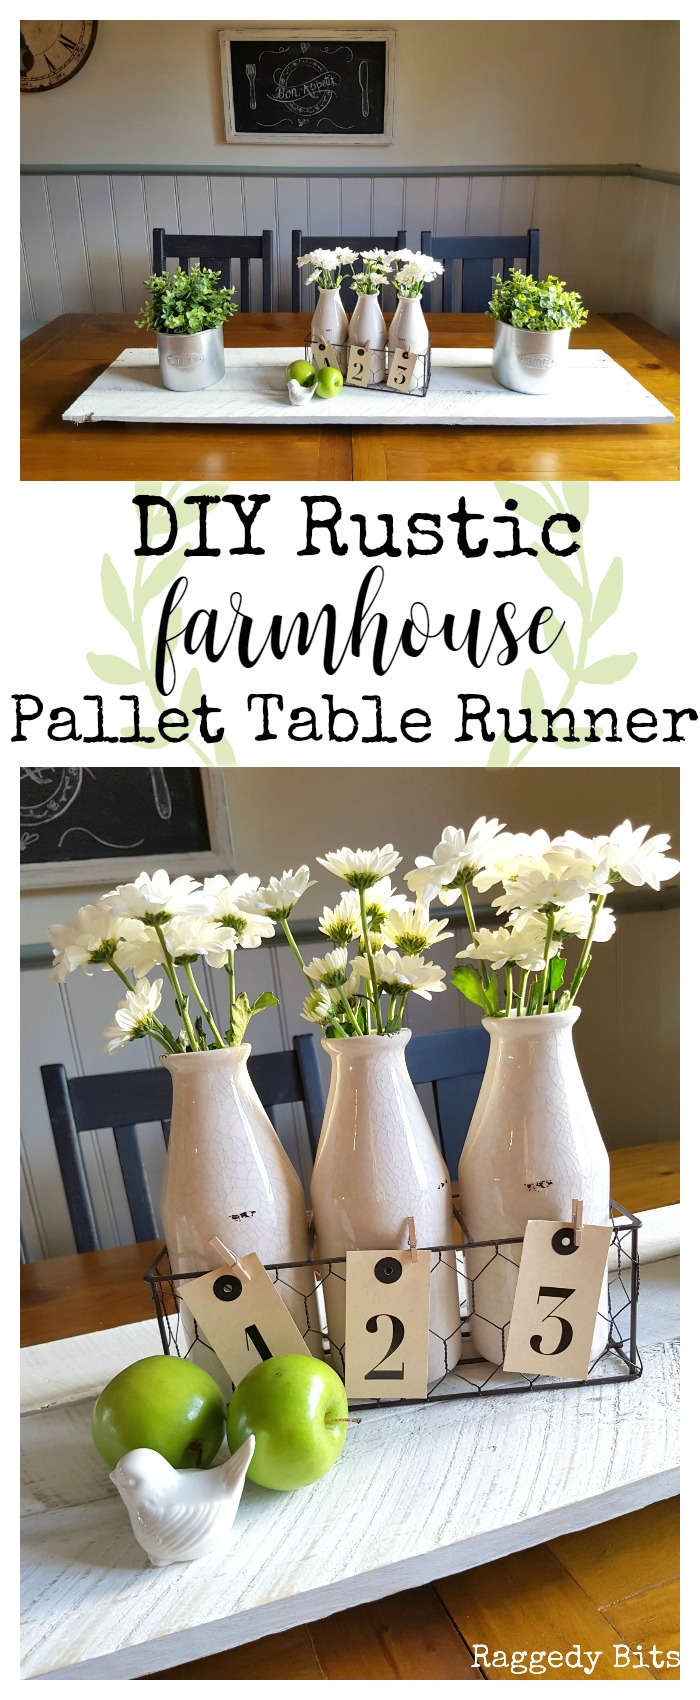 DIY Rustic Farmhouse Pallet Table Runner from Raggedy Bits